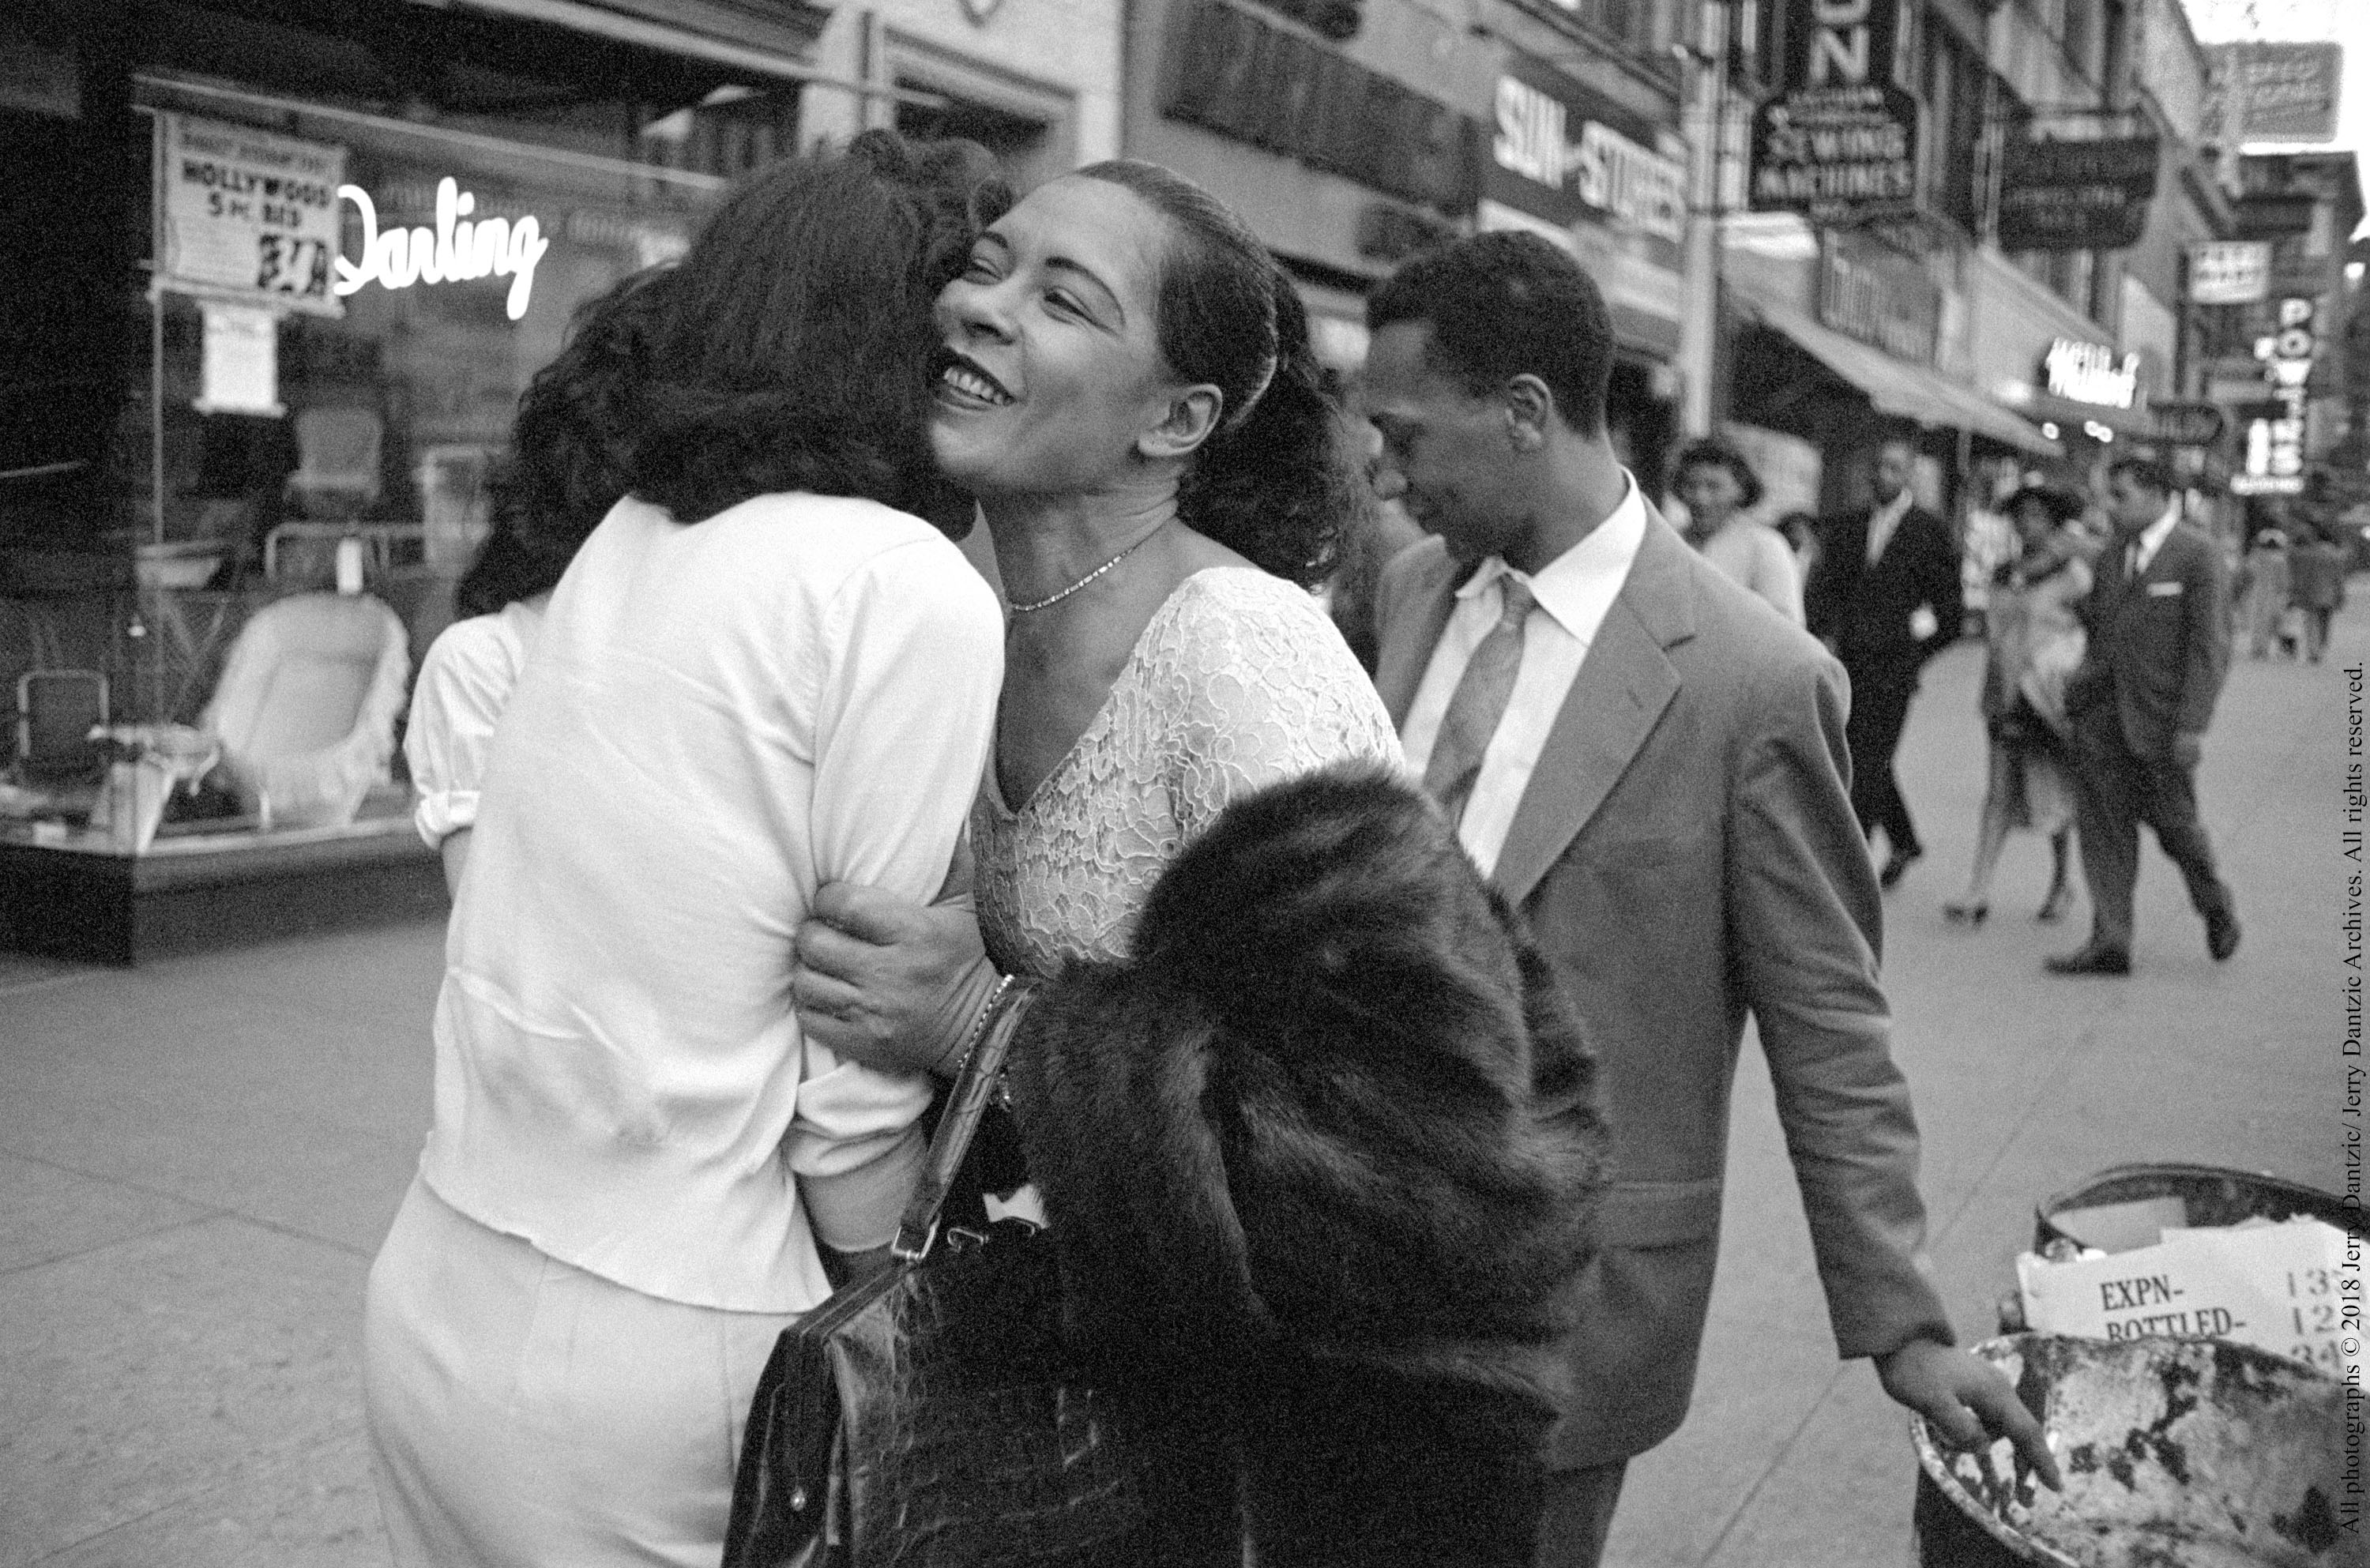 Billie Holiday embraces a fan on Broad Street after receiving a gift_Carl Drinkard is behind her flicking his cigar.jpg